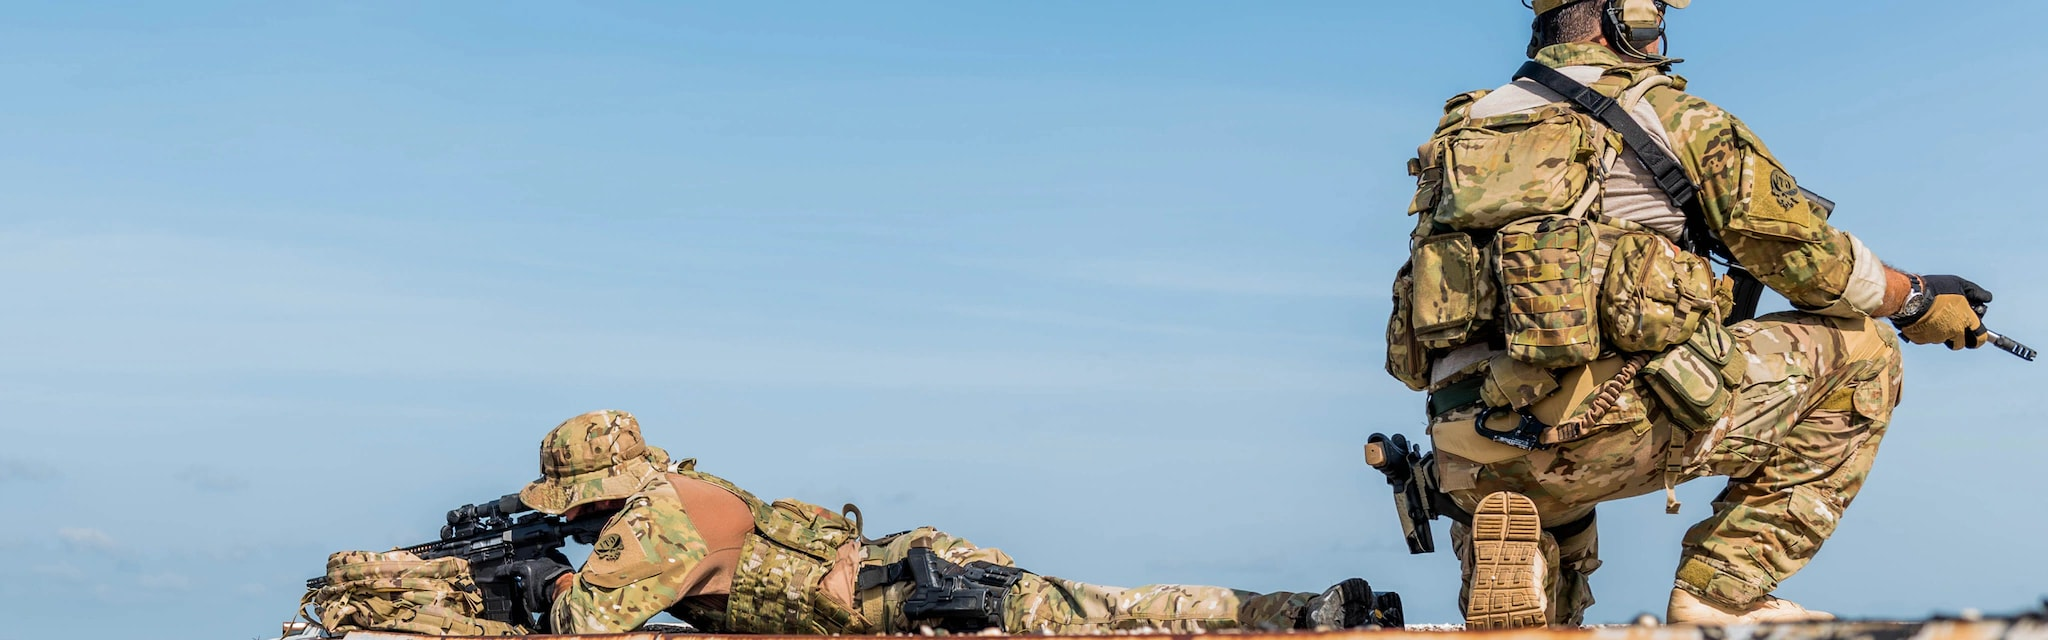 Tactical Lifestyle - Soldiers in field uniforms keeping a lookout